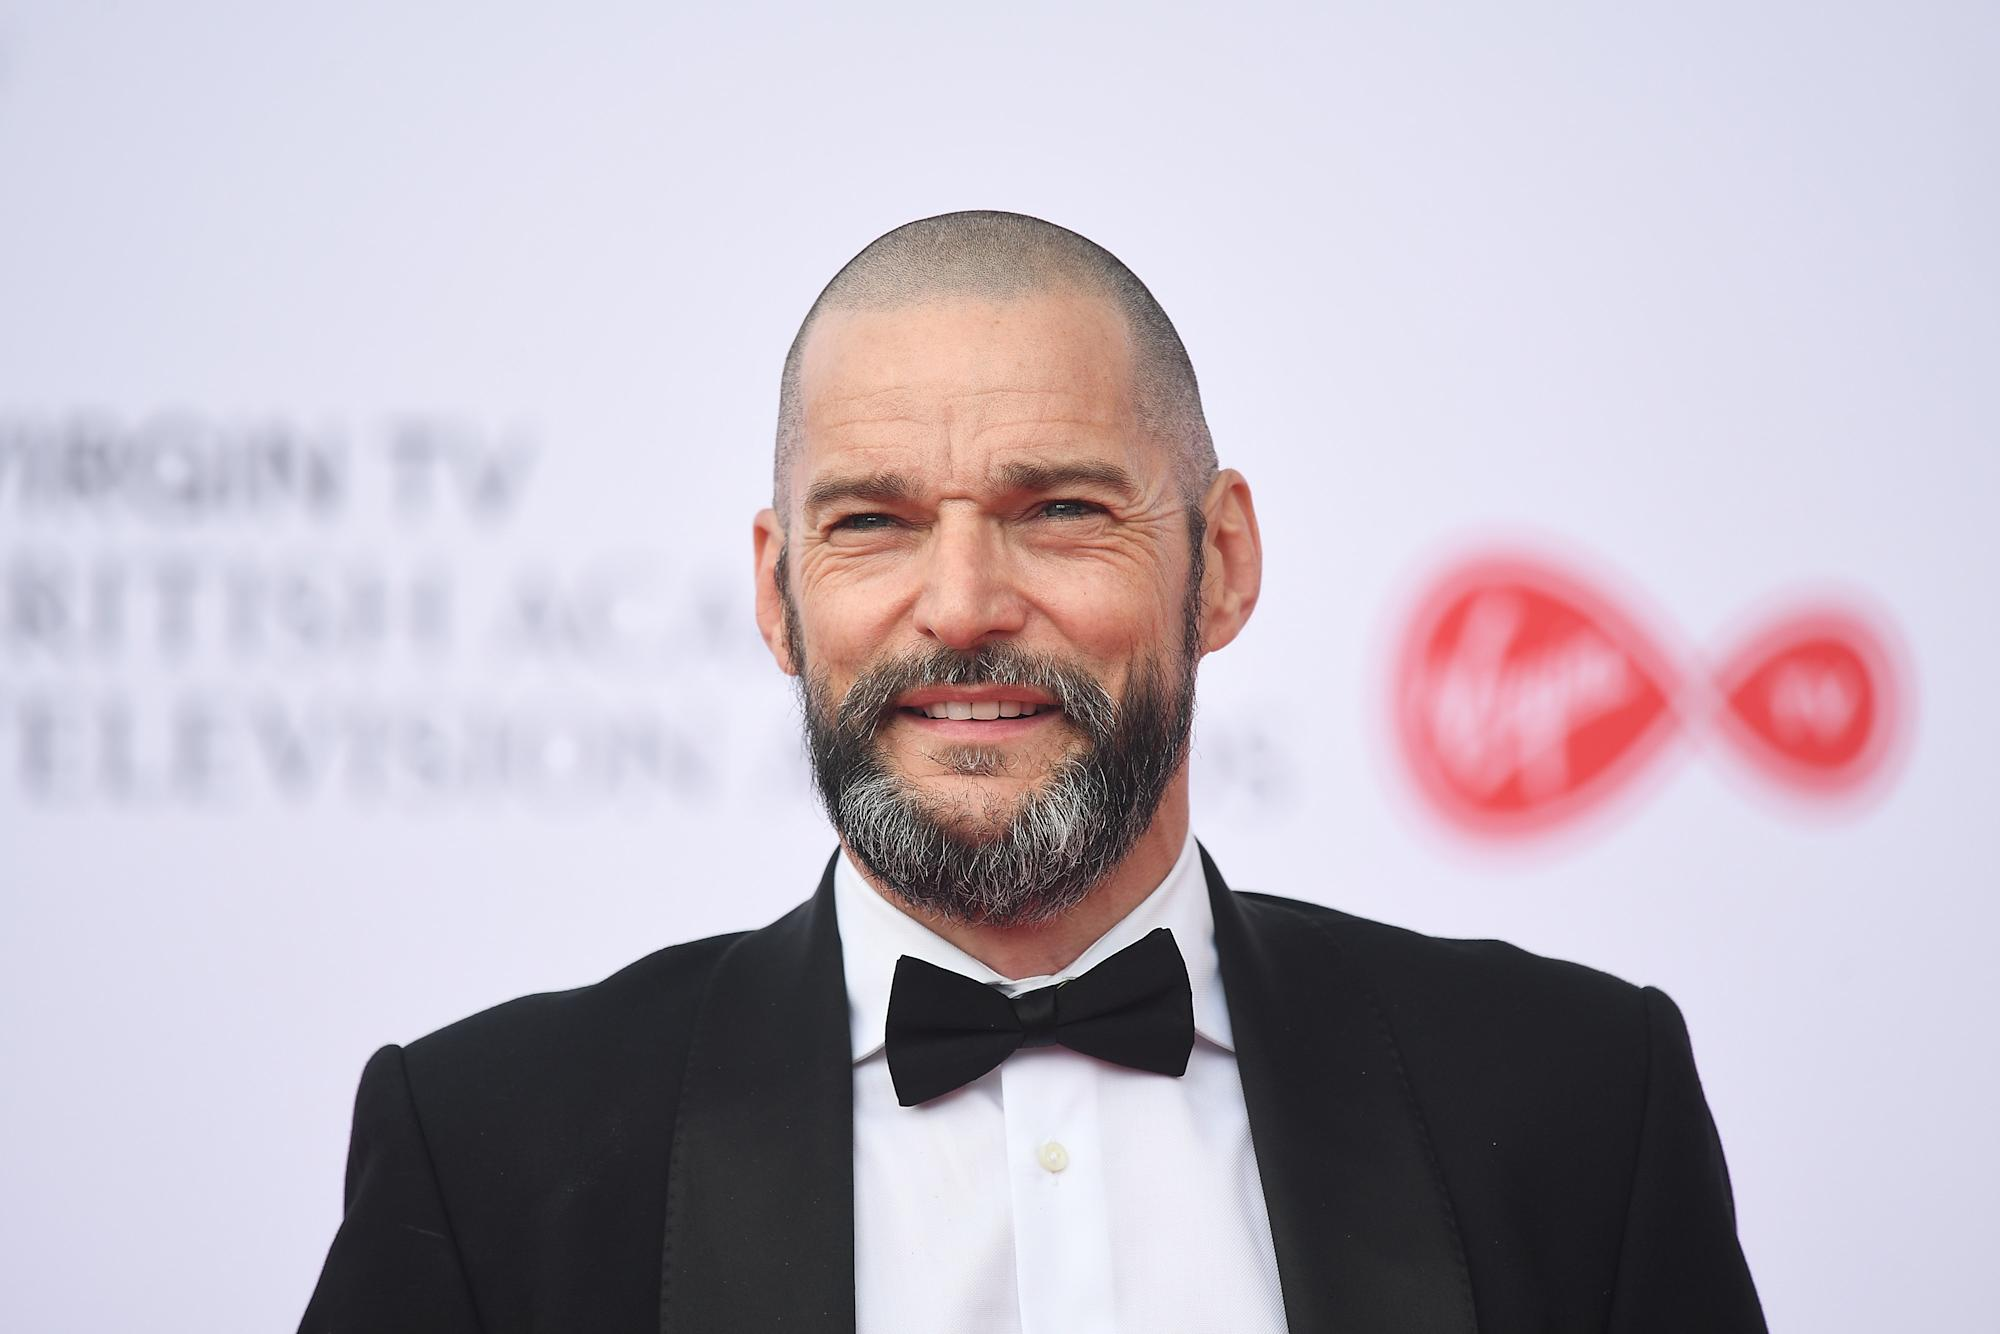 Fred Sirieix 'so proud' of daughter representing Team GB in Tokyo Olympics